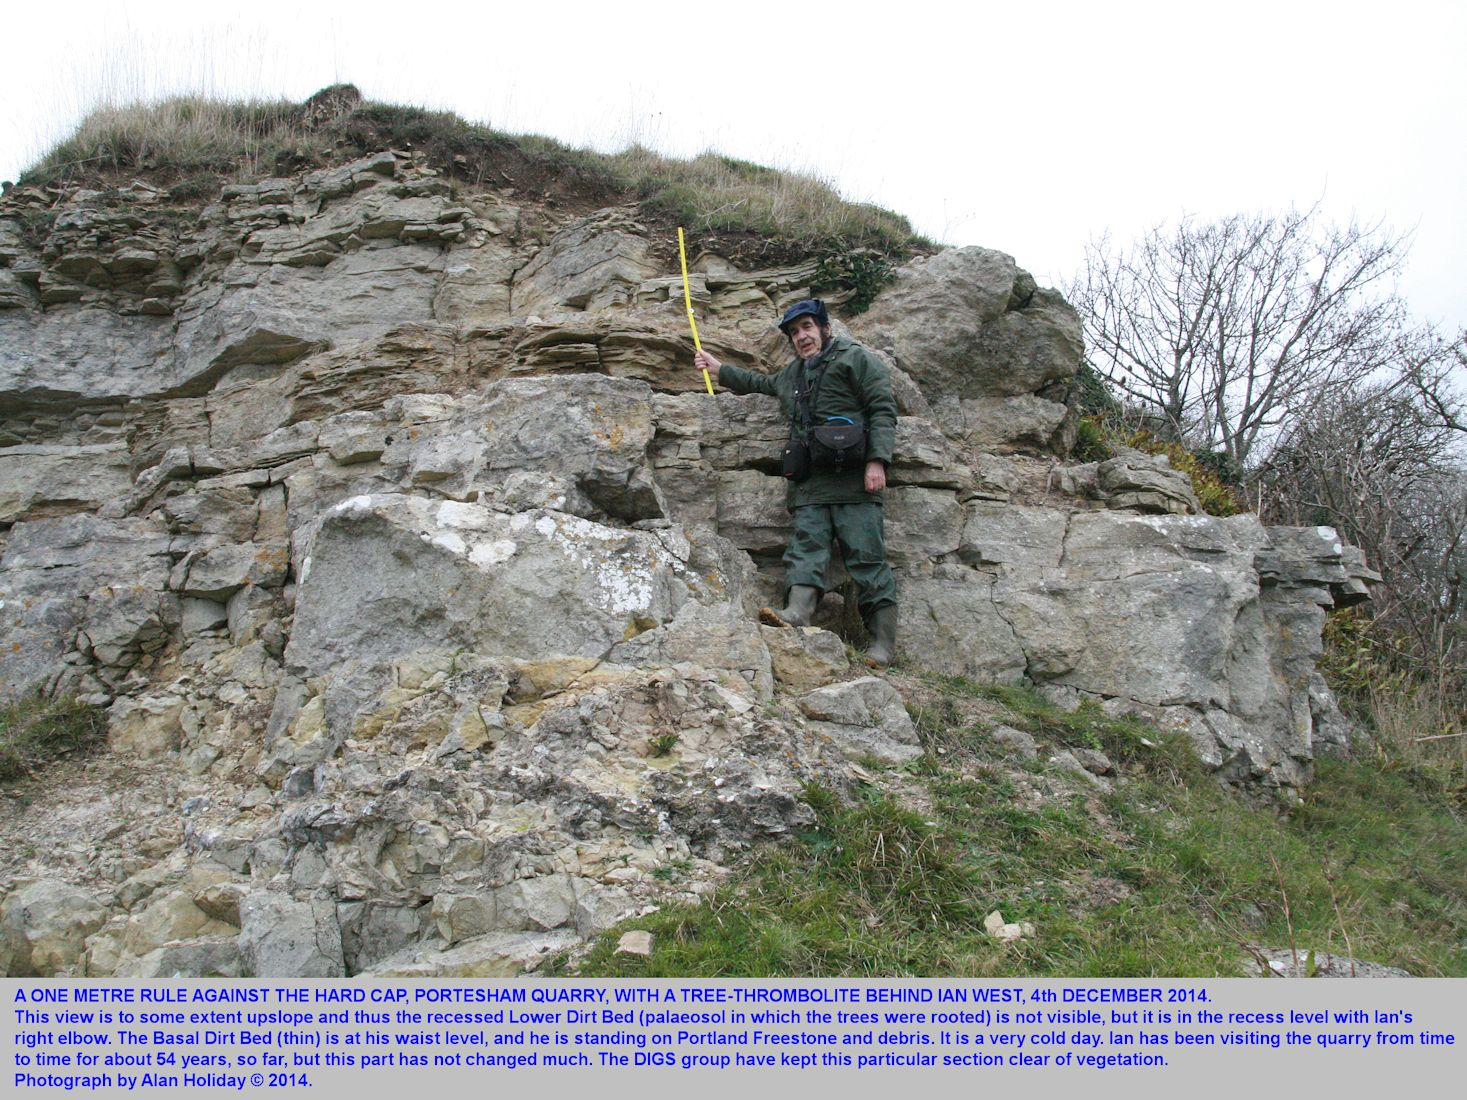 The Hard Cap and associated strata of the Basal Purbeck Group, Portesham Quarry, Dorset, with Ian West and a scale, 2014